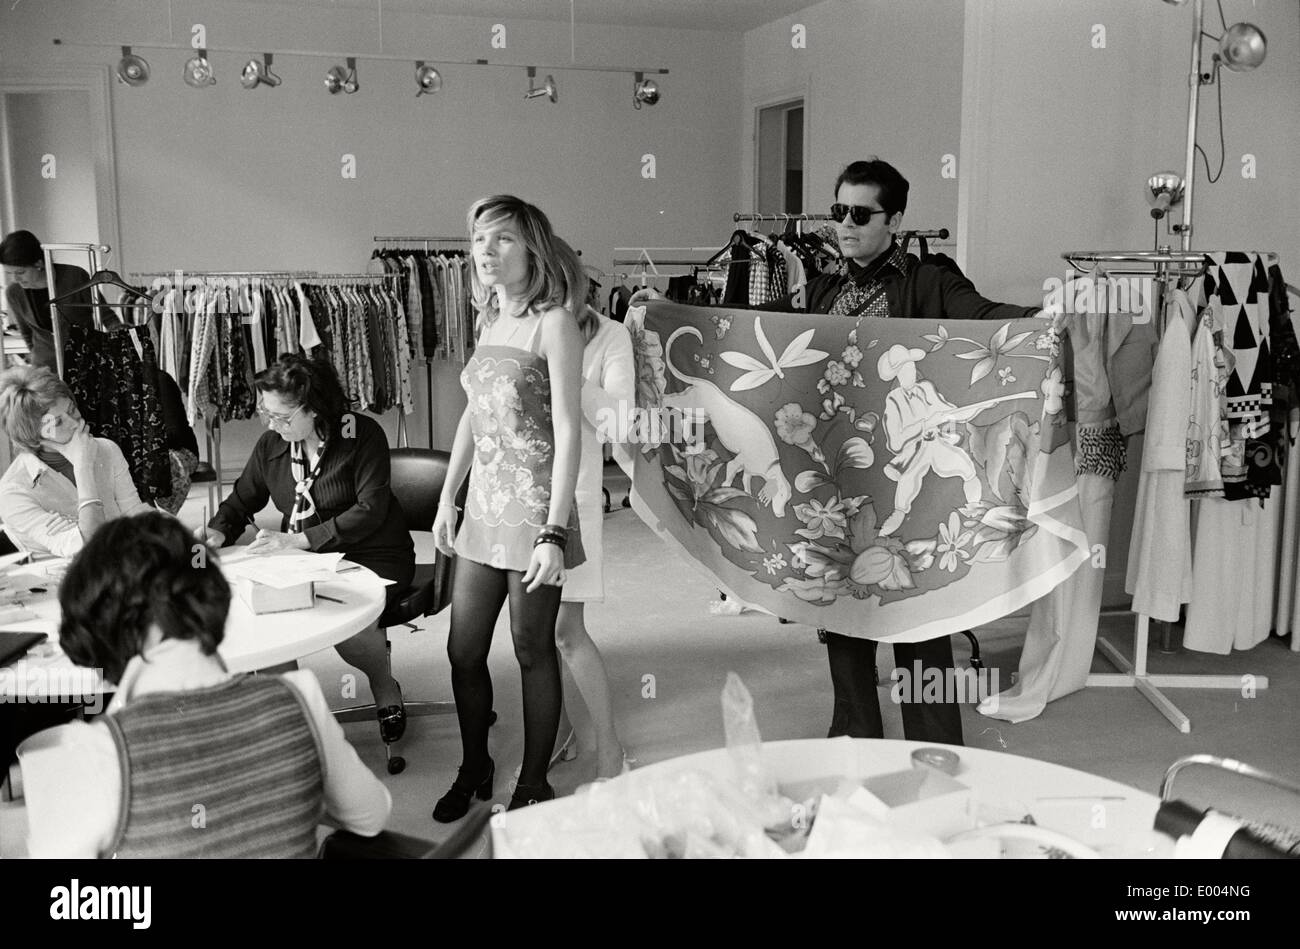 Karl lagerfeld at work at maison chloe 1972 stock photo royalty free image - Maison karl lagerfeld ...